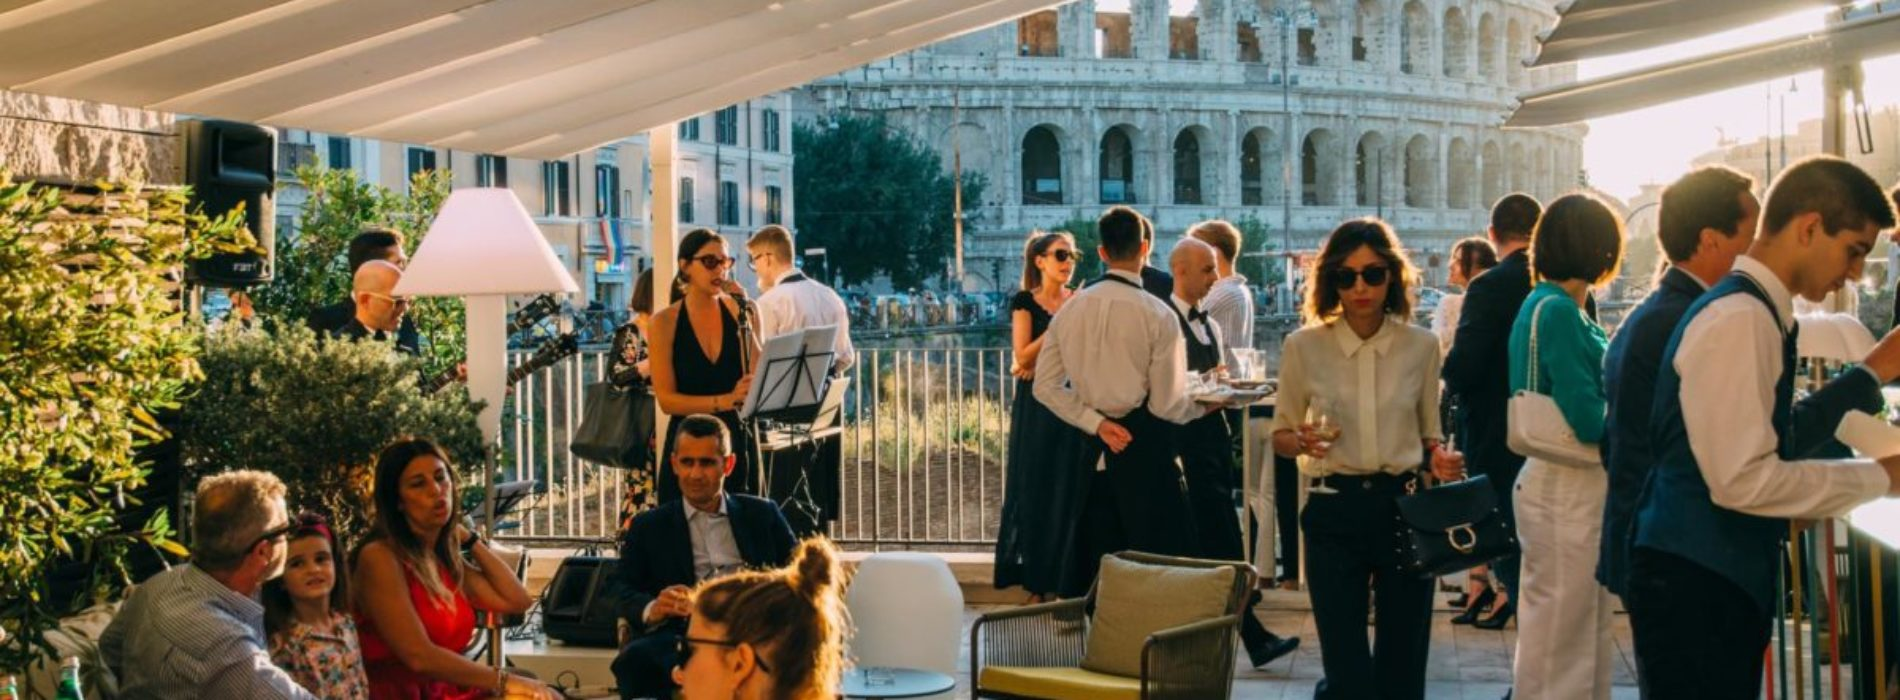 Aperitivo all'aperto a Roma, cinque locali cool in centro per l'estate 2019